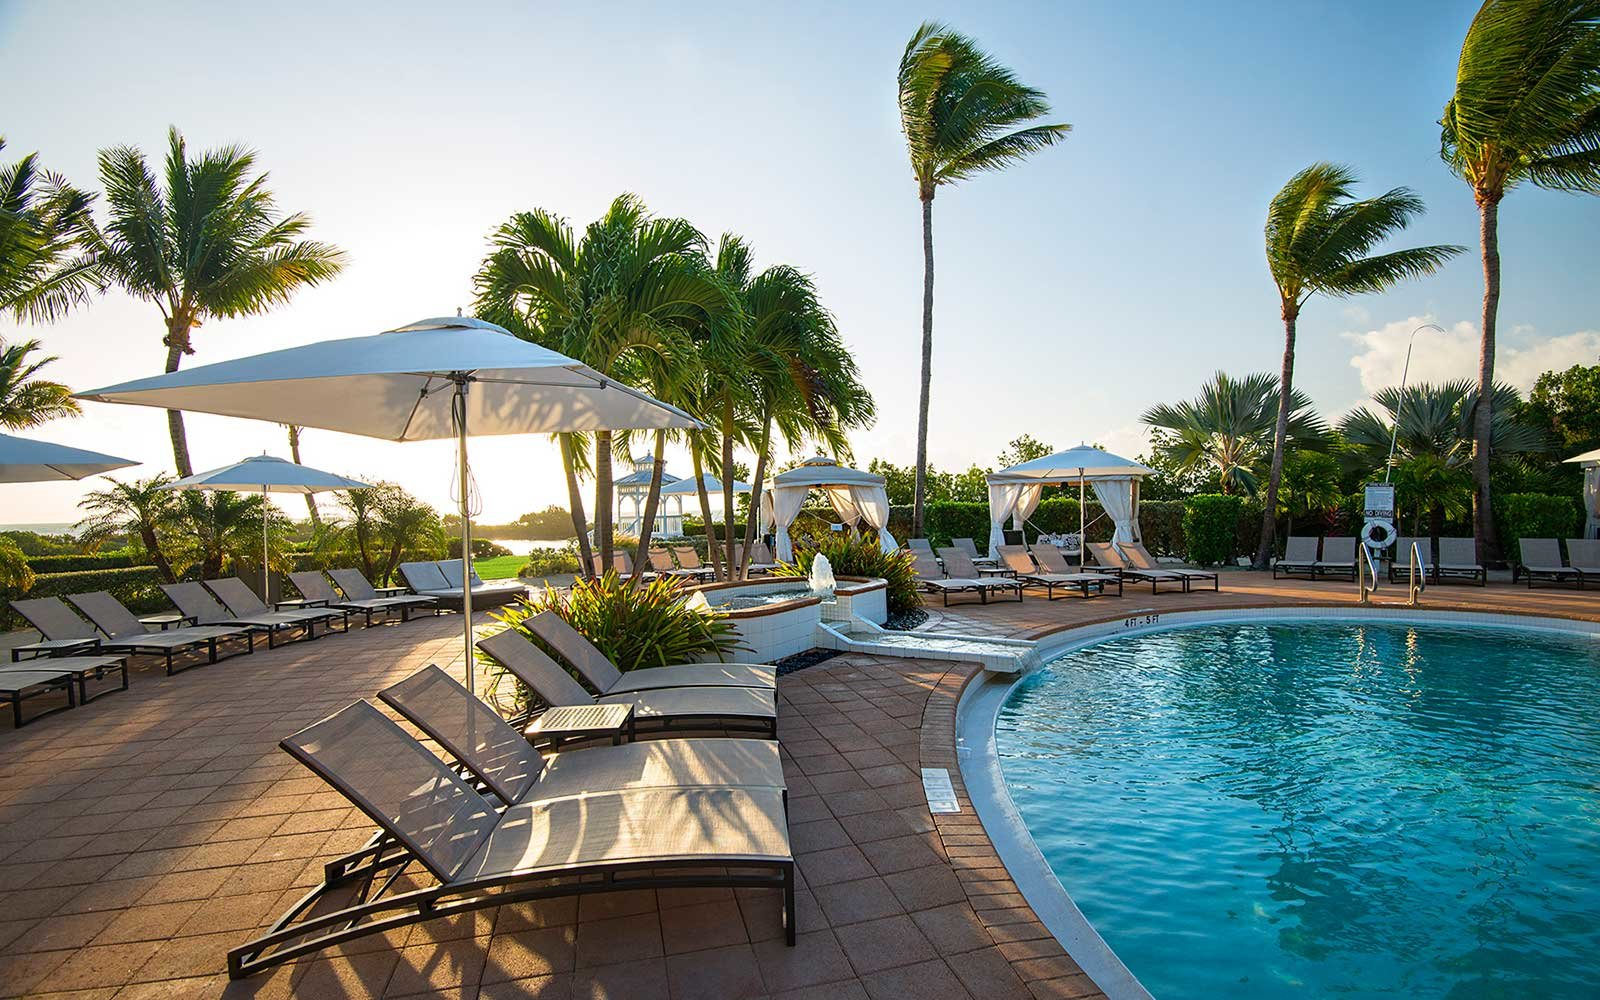 Island Cay Resort Clearwater